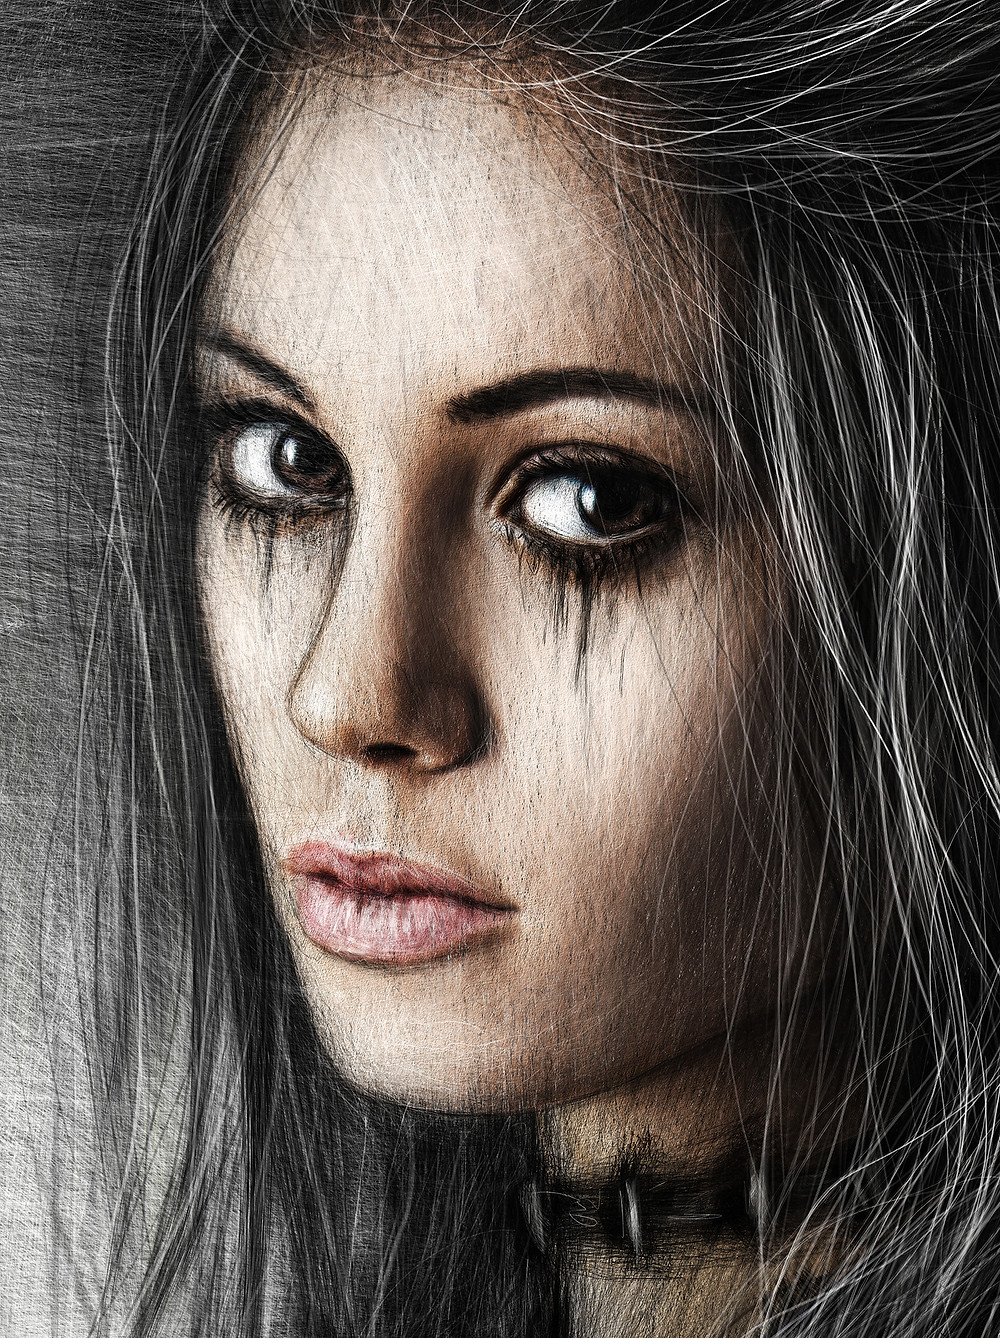 Beautiful digital portrait painting